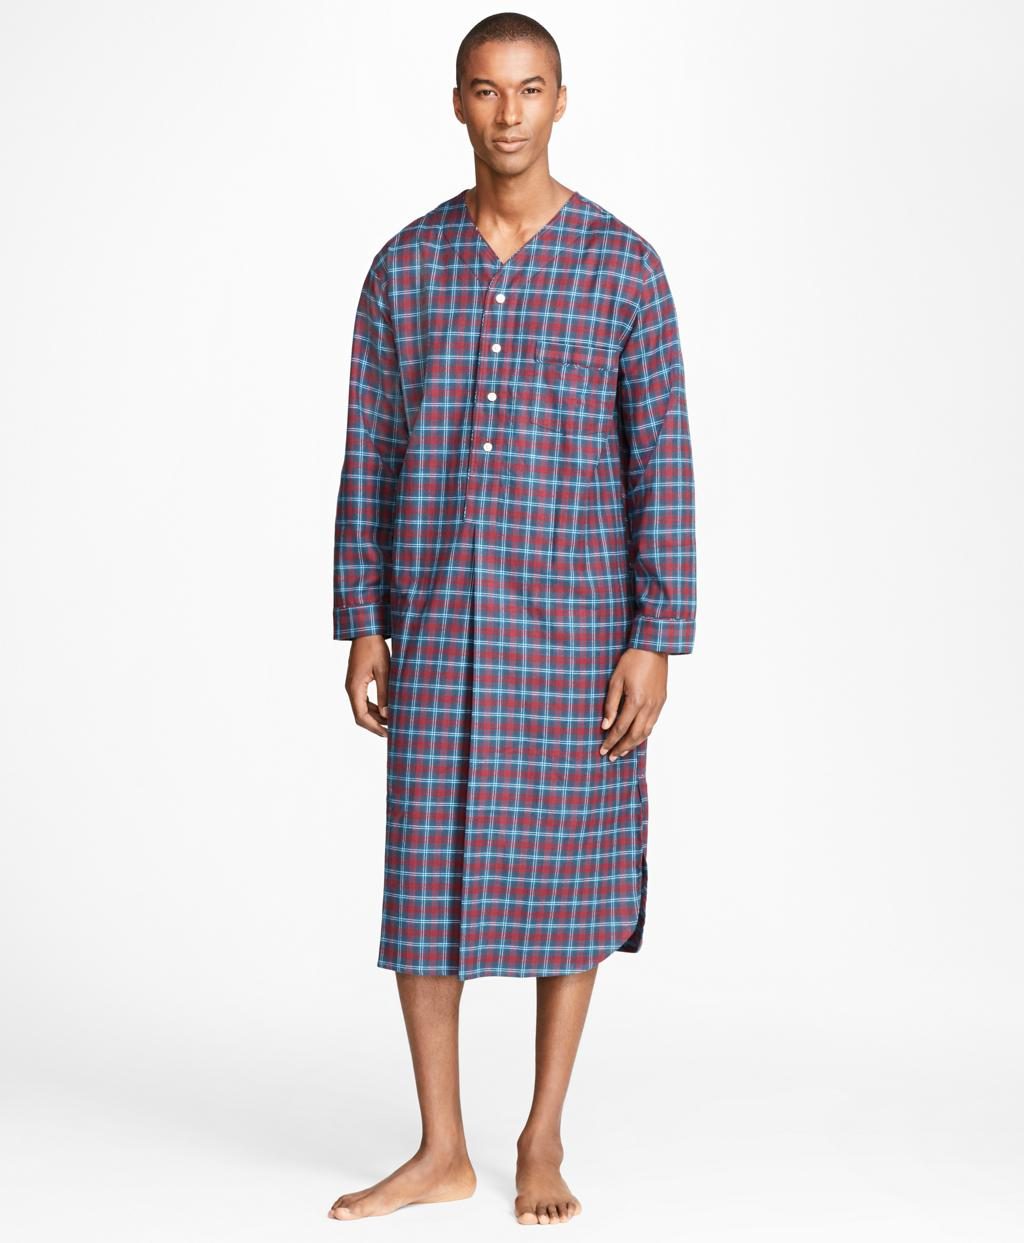 Lyst - Brooks Brothers Alternating Plaid Nightshirt in Blue for Men 43293877e